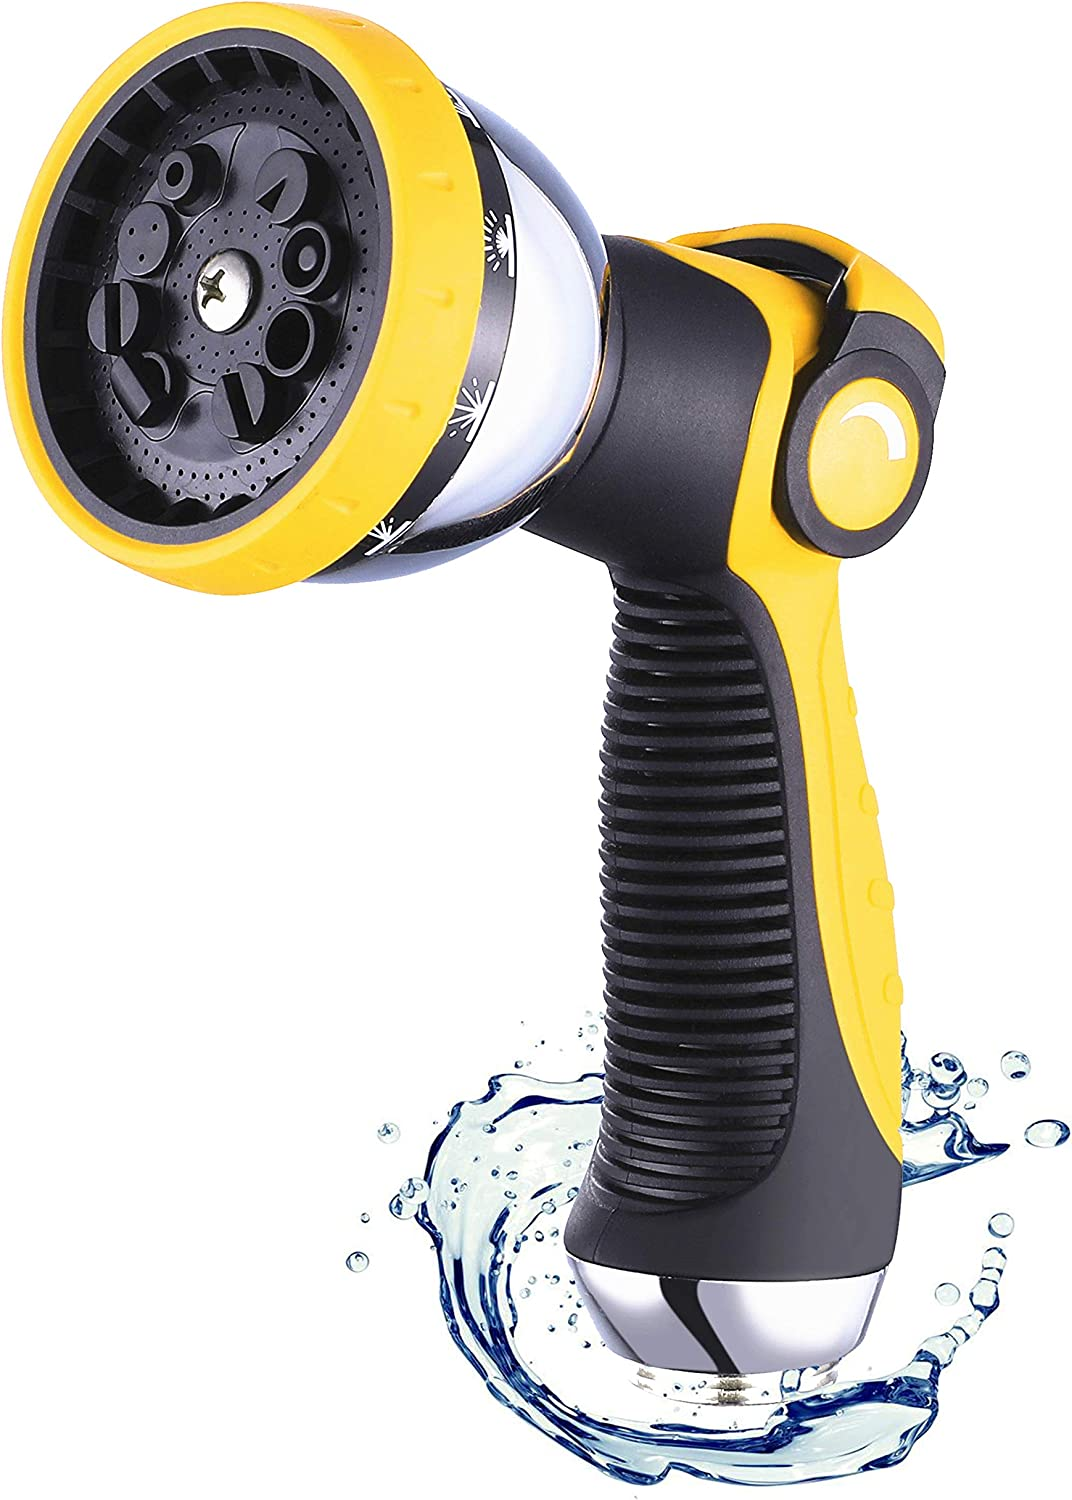 HOMY Garden Hose Nozzle, Heavy Duty and High Pressure Water Nozzle with 10 Spray Patterns, Thumb Switch Design, Easy Way to Control Water, For Watering , Car washing, Pet Washing, etc.